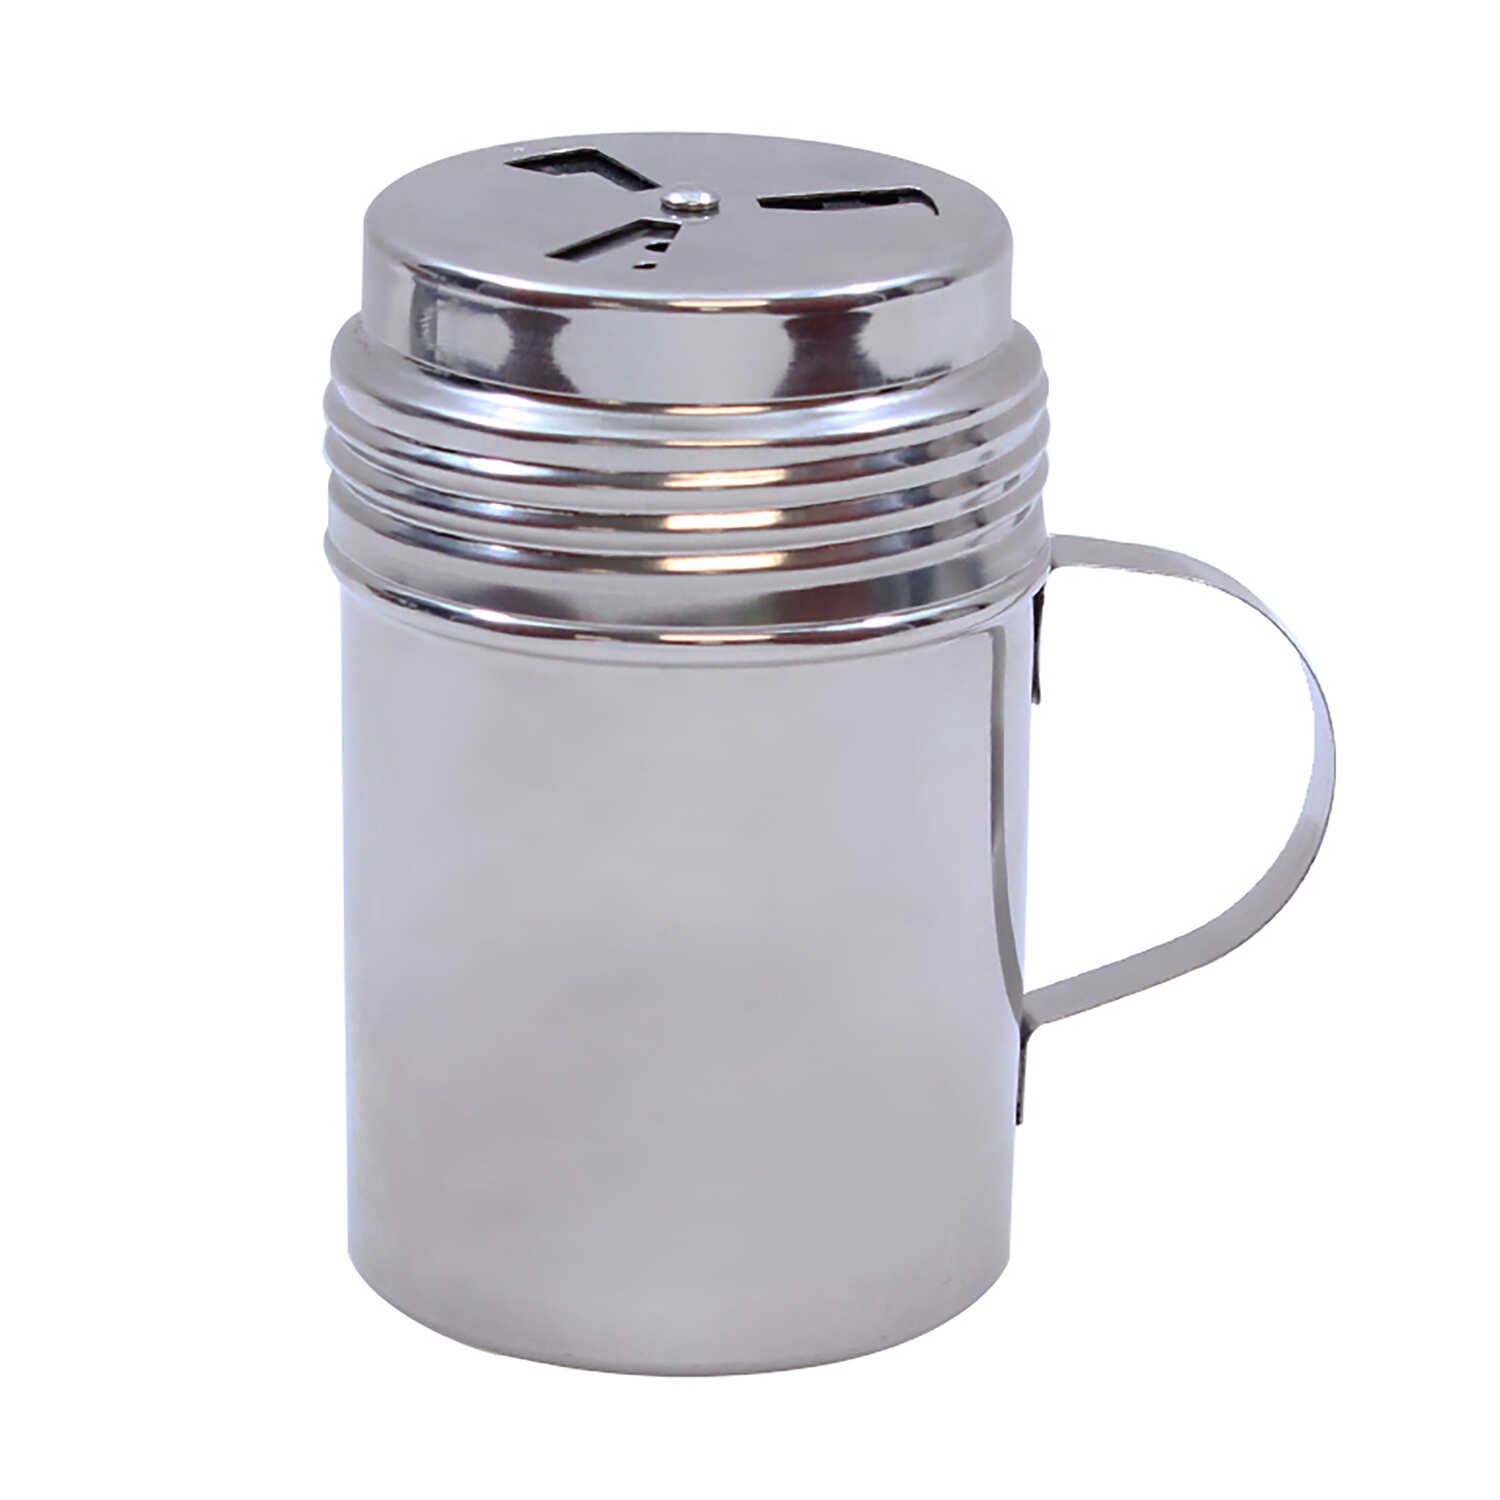 Tablecraft  BBQ  Silver  Dry Rub Shaker w/Handle